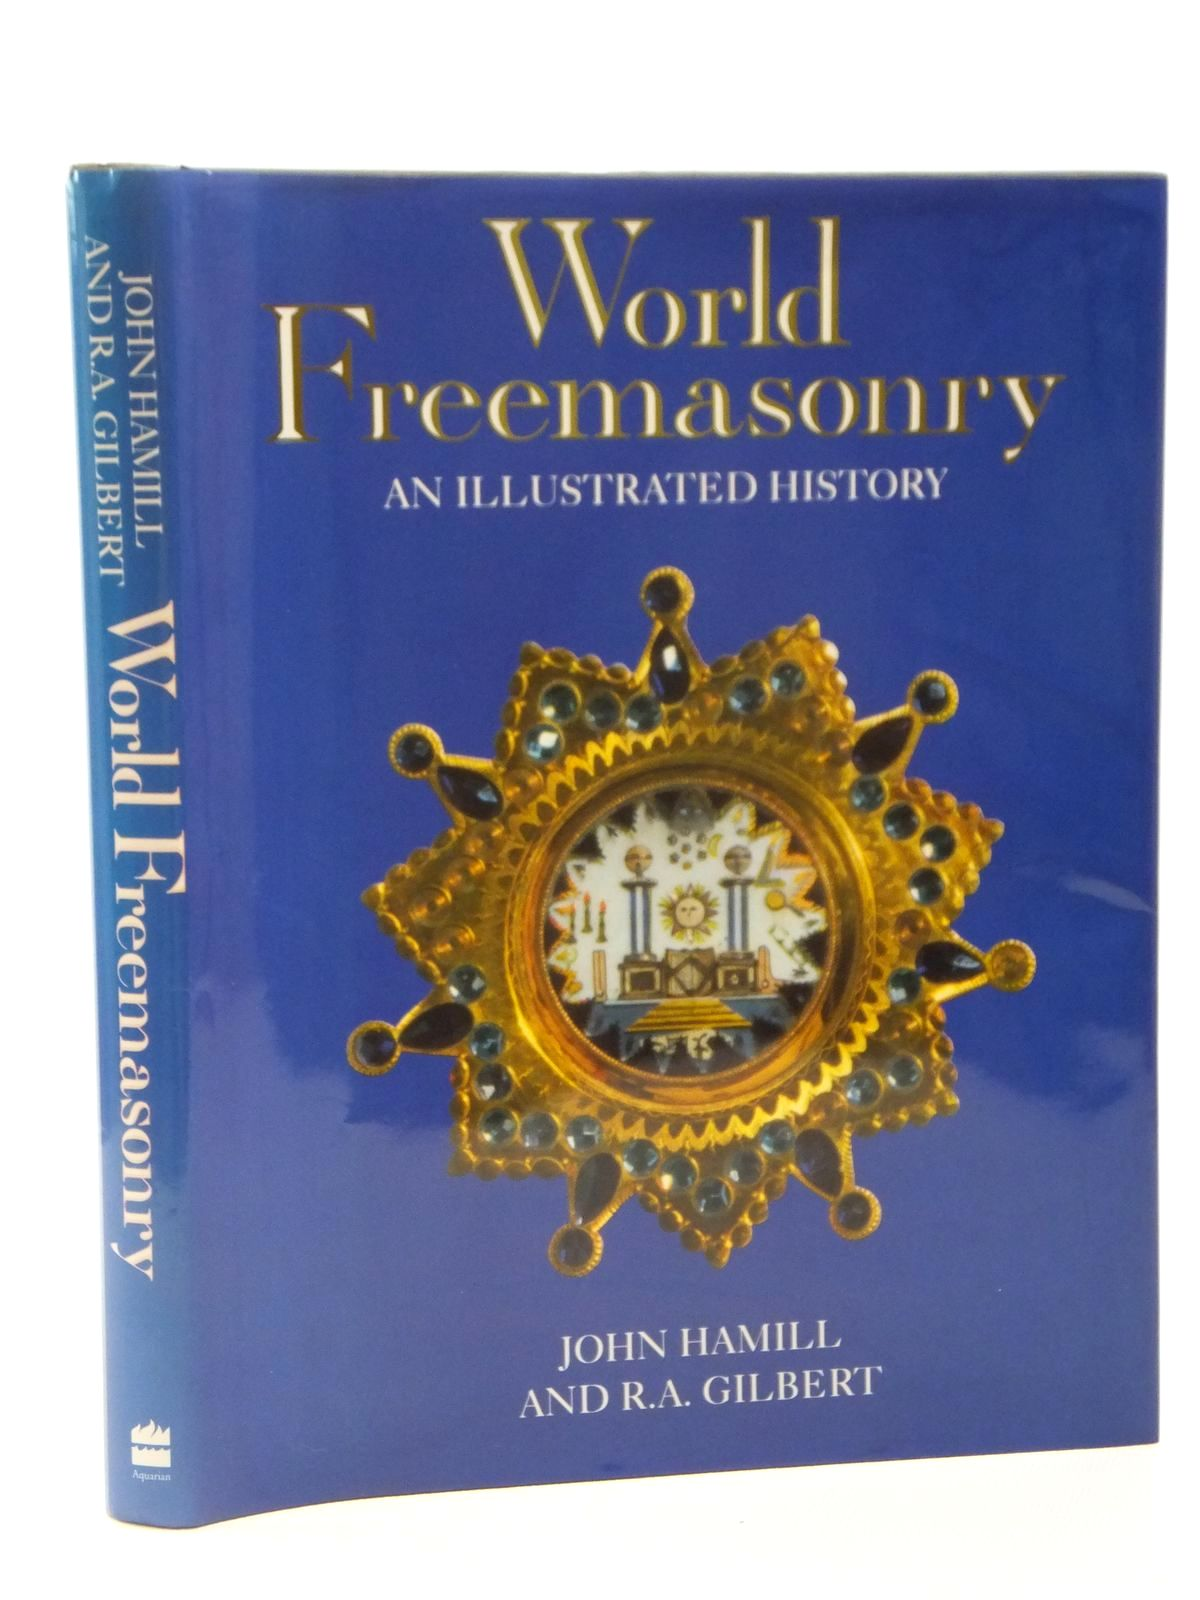 Photo of WORLD FREEMASONRY AN ILLUSTRATED HISTORY written by Hamill, John<br />Gilbert, R.A. published by Aquarian Thorsons (STOCK CODE: 2122280)  for sale by Stella & Rose's Books